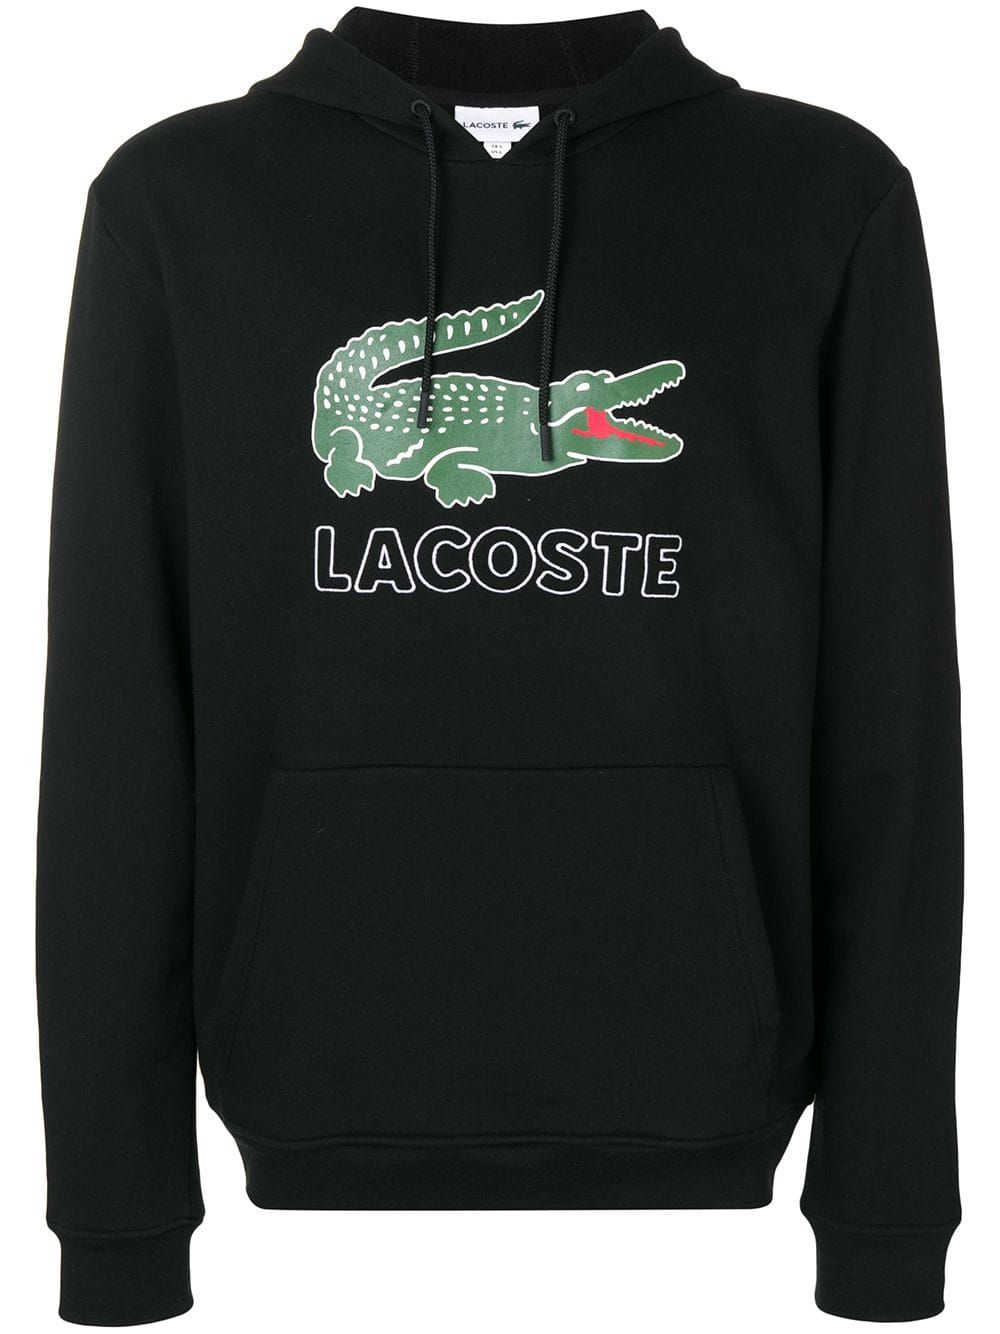 5a494f40 LACOSTE LACOSTE LOGO PRINT HOODIE - BLACK. #lacoste #cloth | Lacoste ...